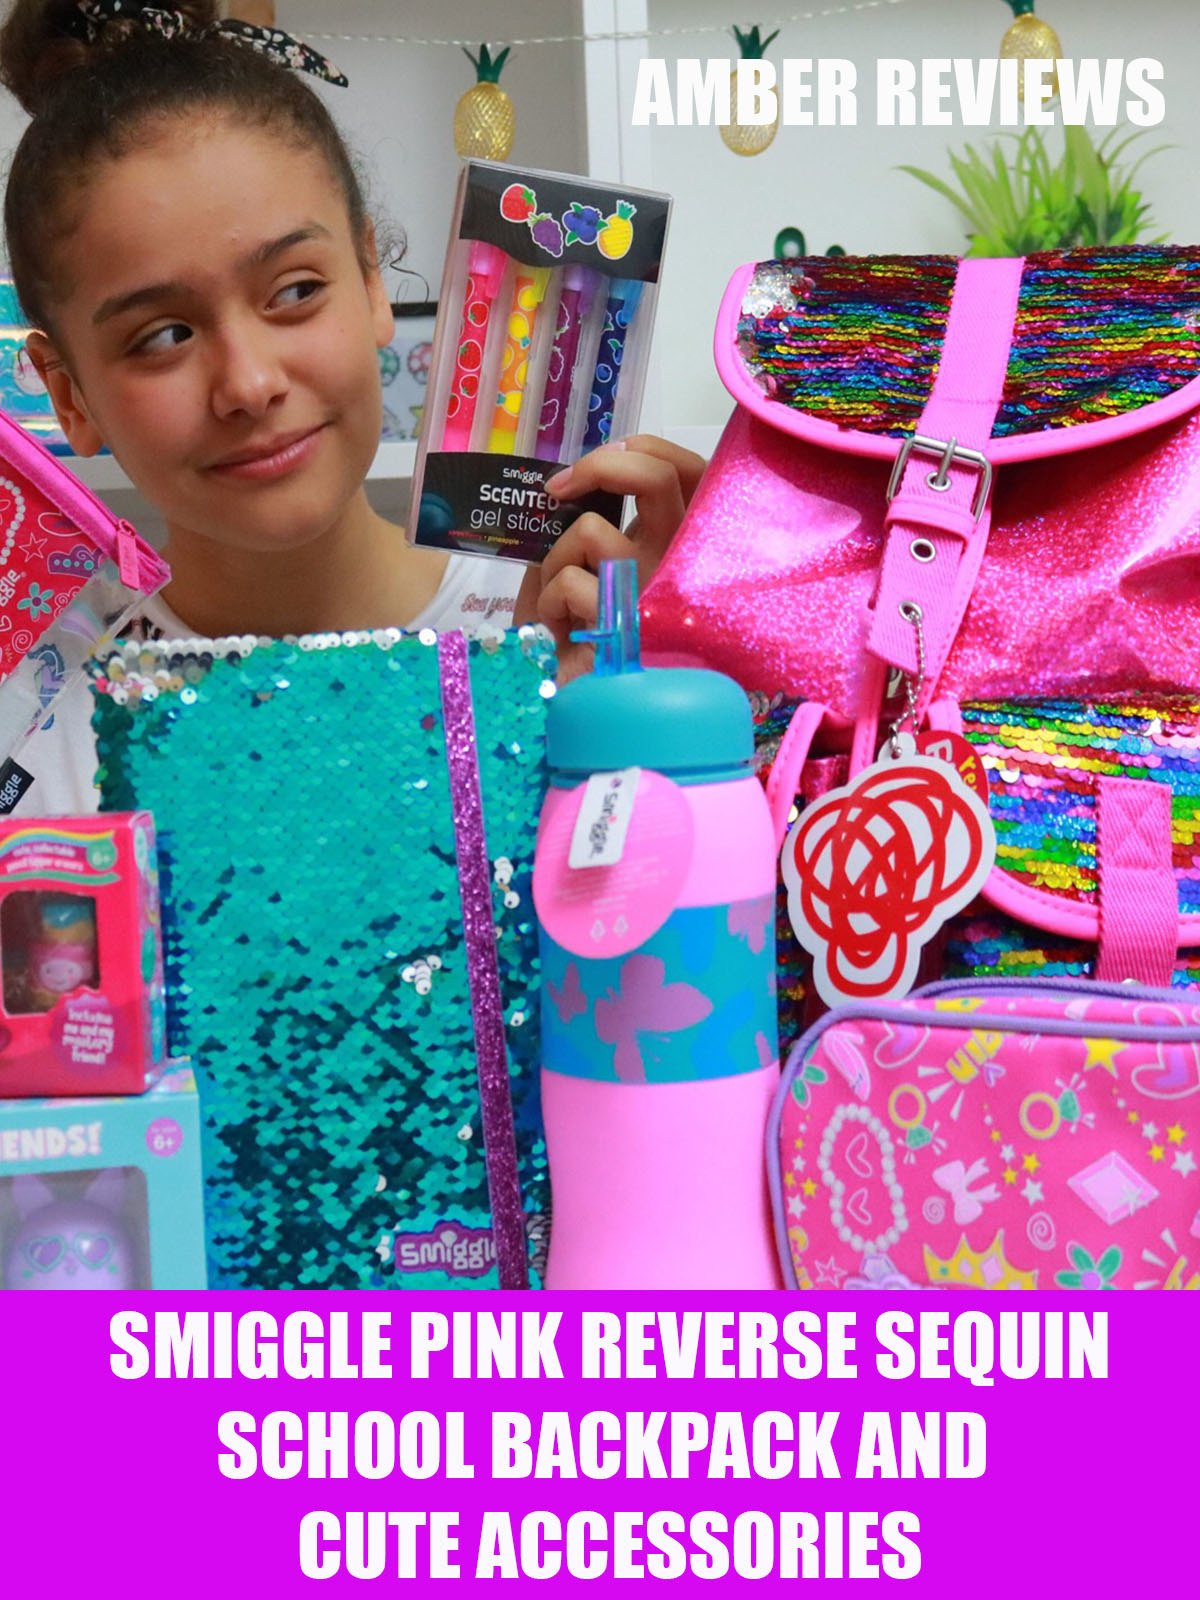 Amber Reviews Smiggle Pink Reverse Sequin Backpack and Cute Accessories